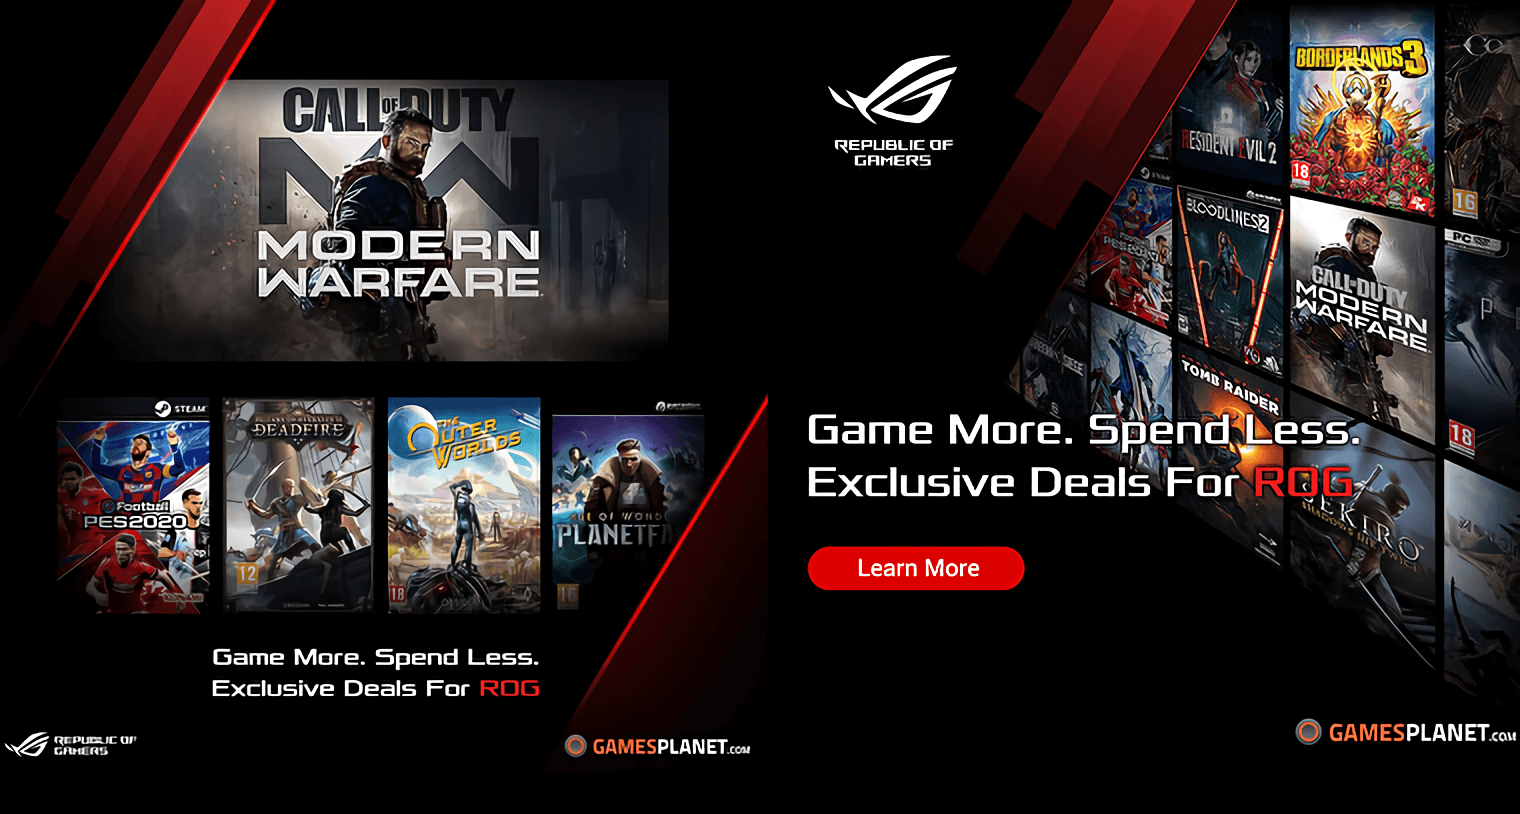 Asus and Gamesplanet partner up to offer games for bargain prices